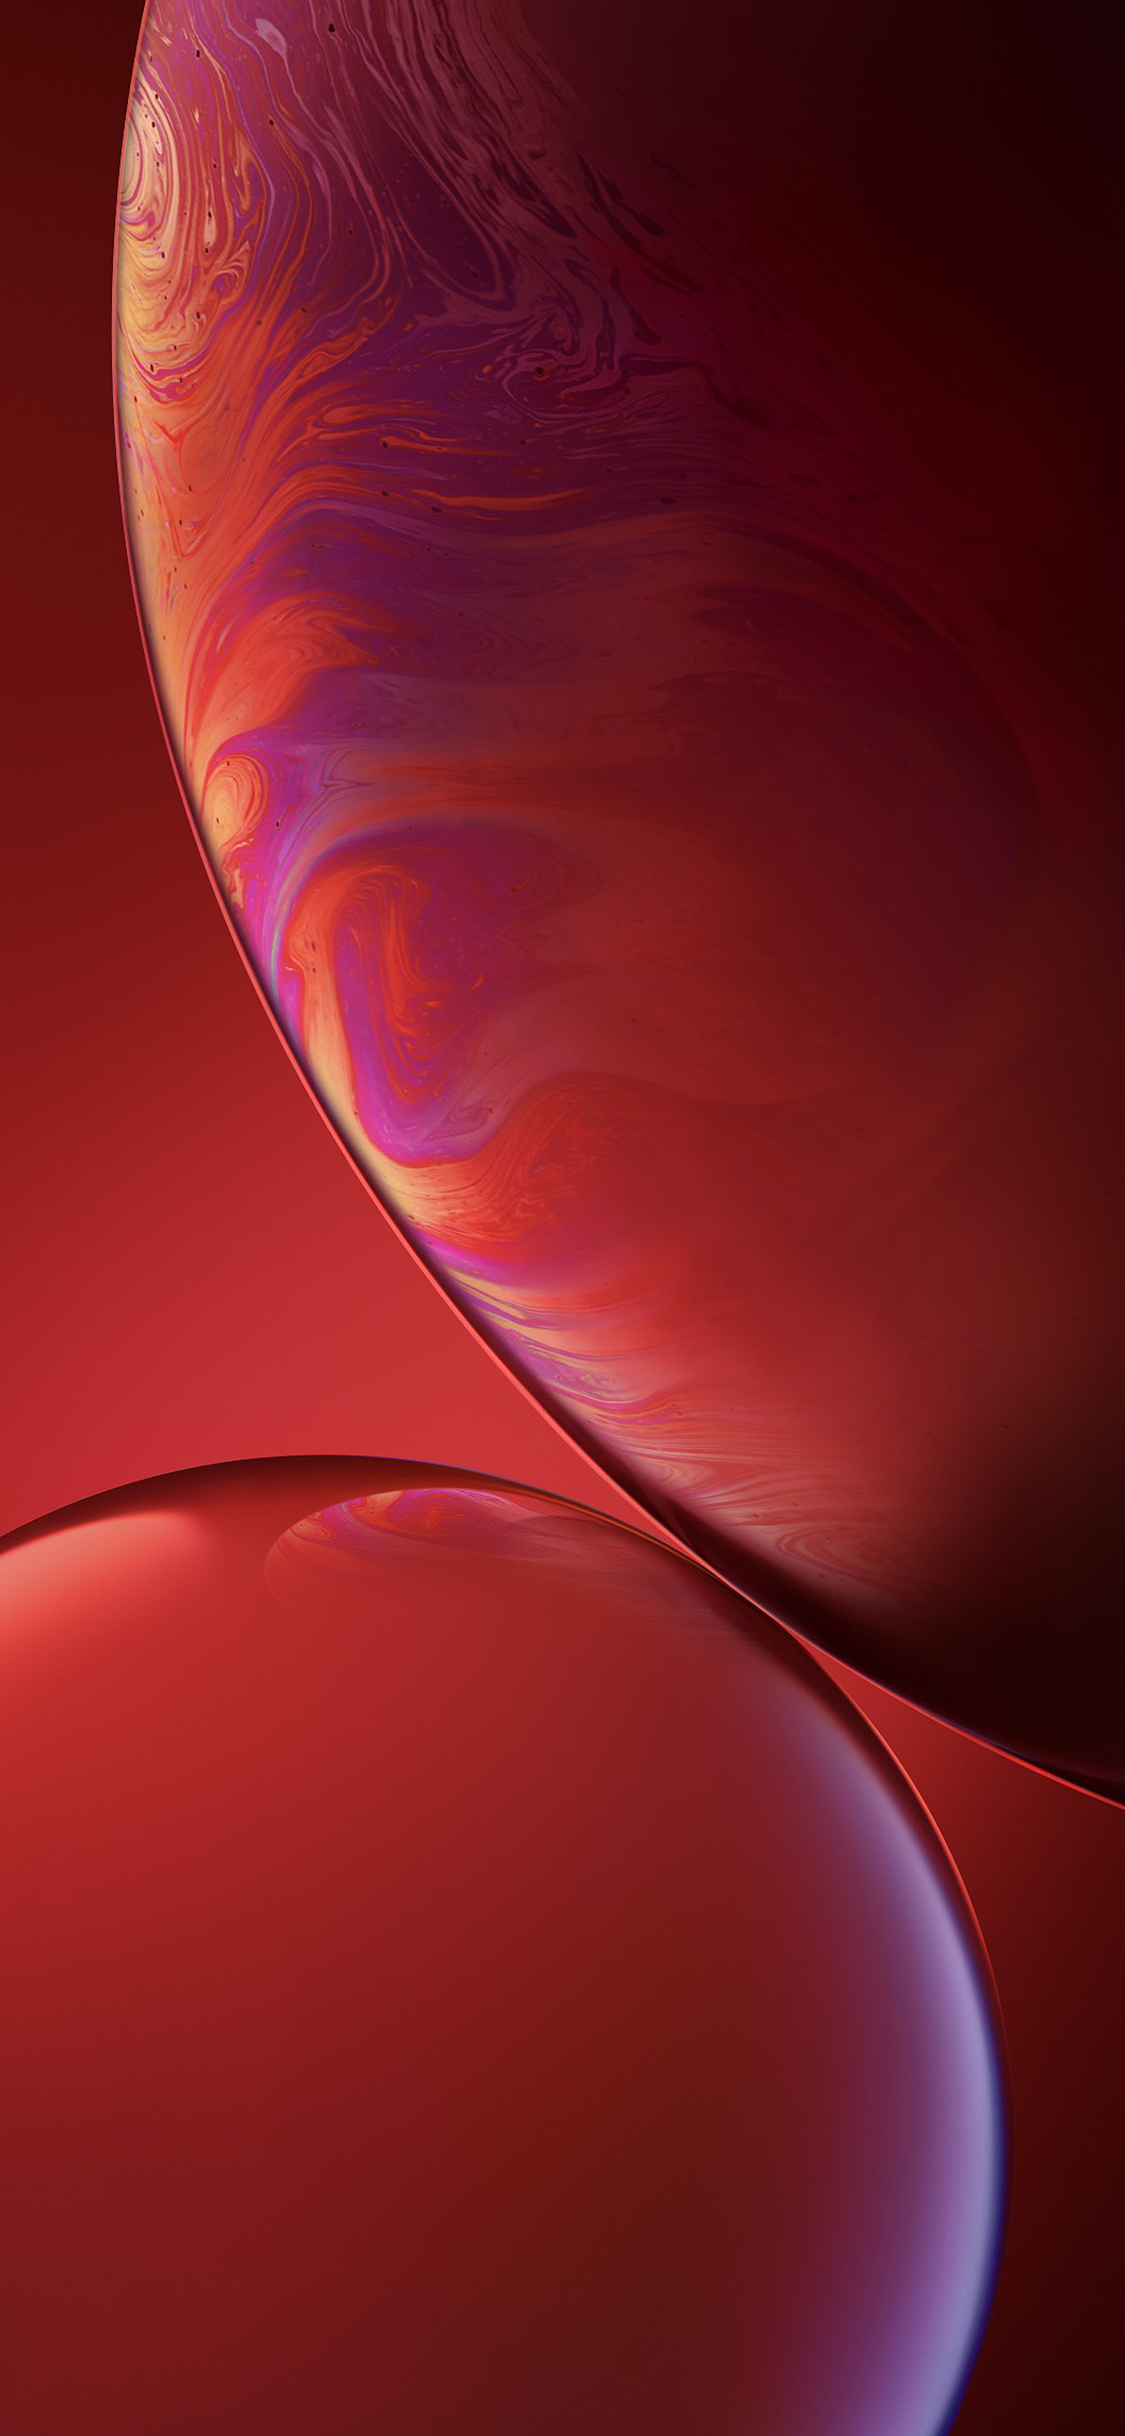 Iphone Xr Stock Wallpaper Productred Wallpapers Central